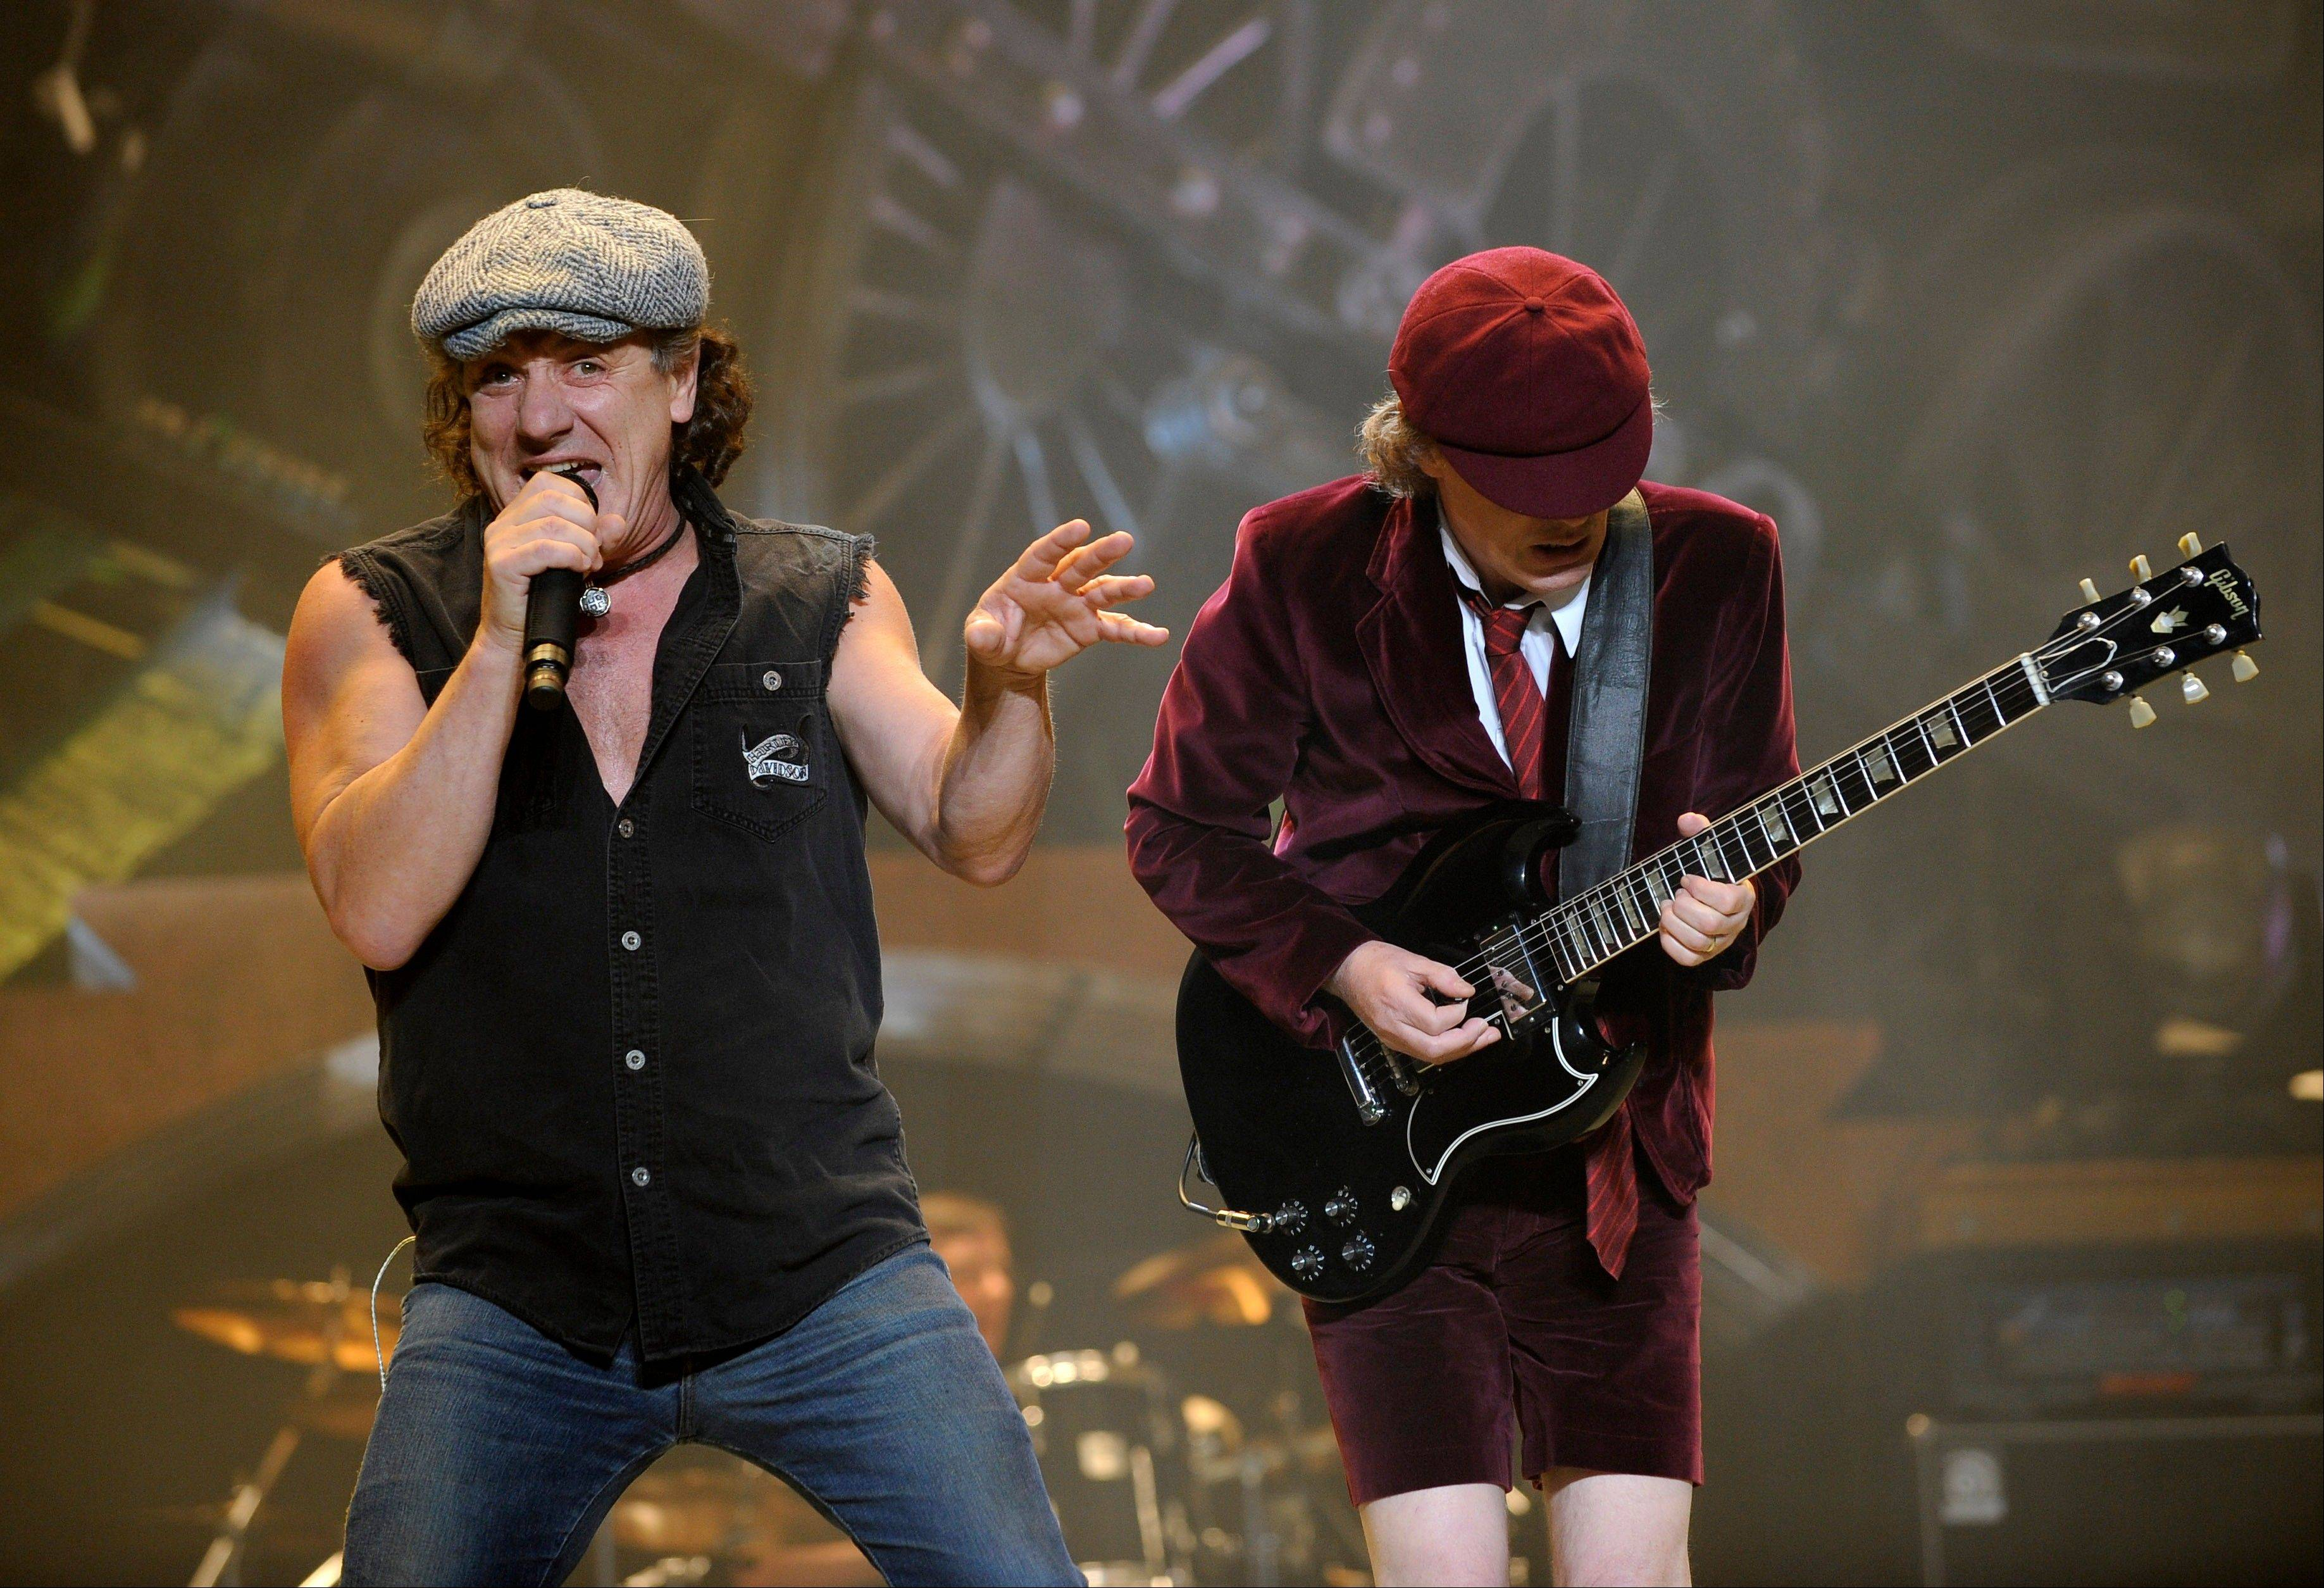 AC/DC lead singer Brian Johnson, left, and Angus Young perform on the Black Ice tour at Madison Square Garden in New York. Columbia Records and Apple announced Monday that the classic rock band's music will be available at the iTunes Store worldwide.